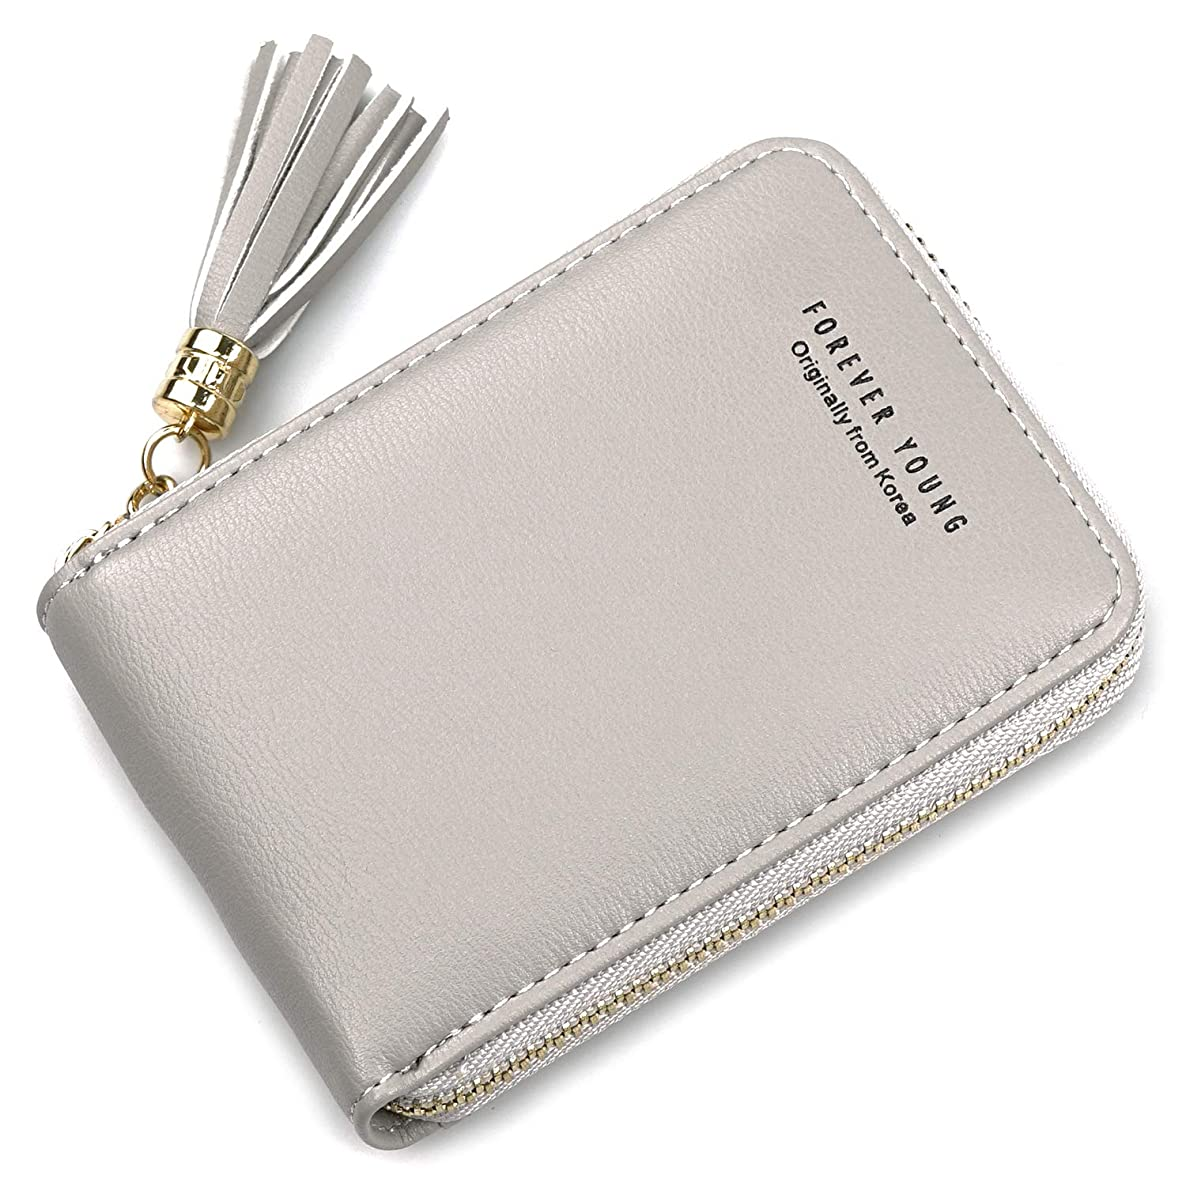 Small RFID Blocking Credit Card Wallet Zipper Change Purse Card Holder Accordion Coin Purse Pocket Wallet